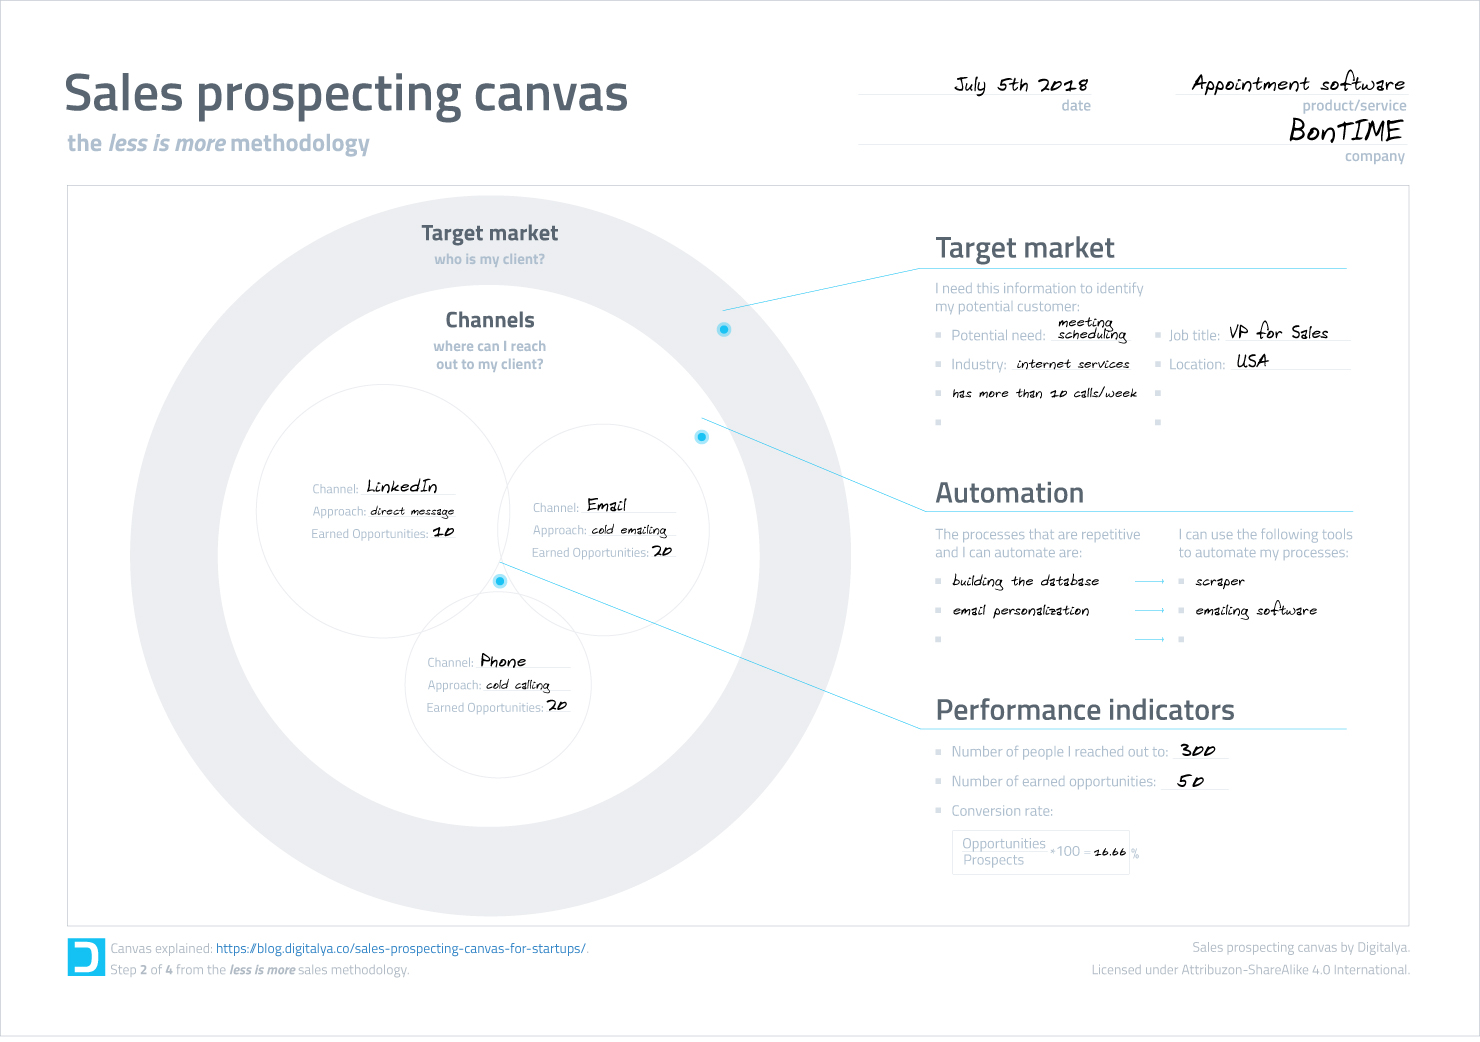 sales-prospecting-canvas-example-1